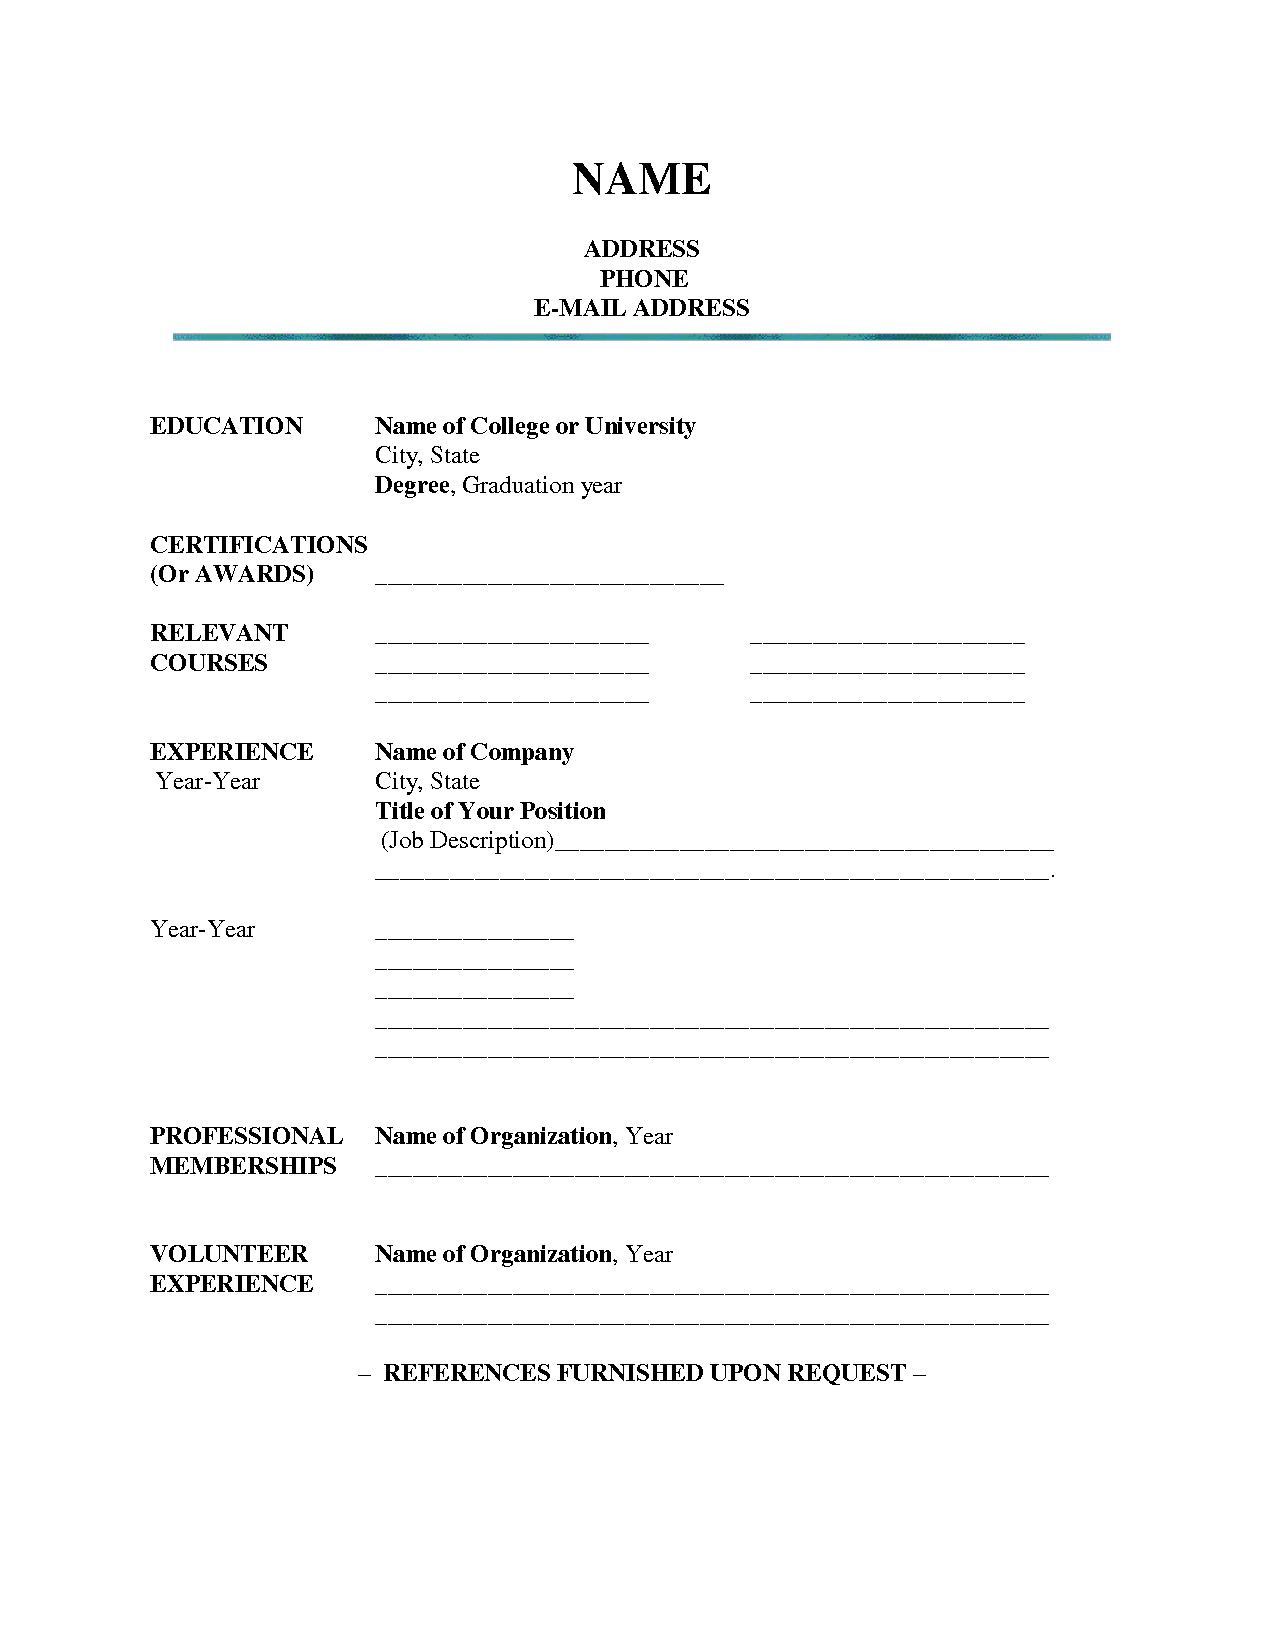 blank resume templates for students resume builderresume templates cover letter examples